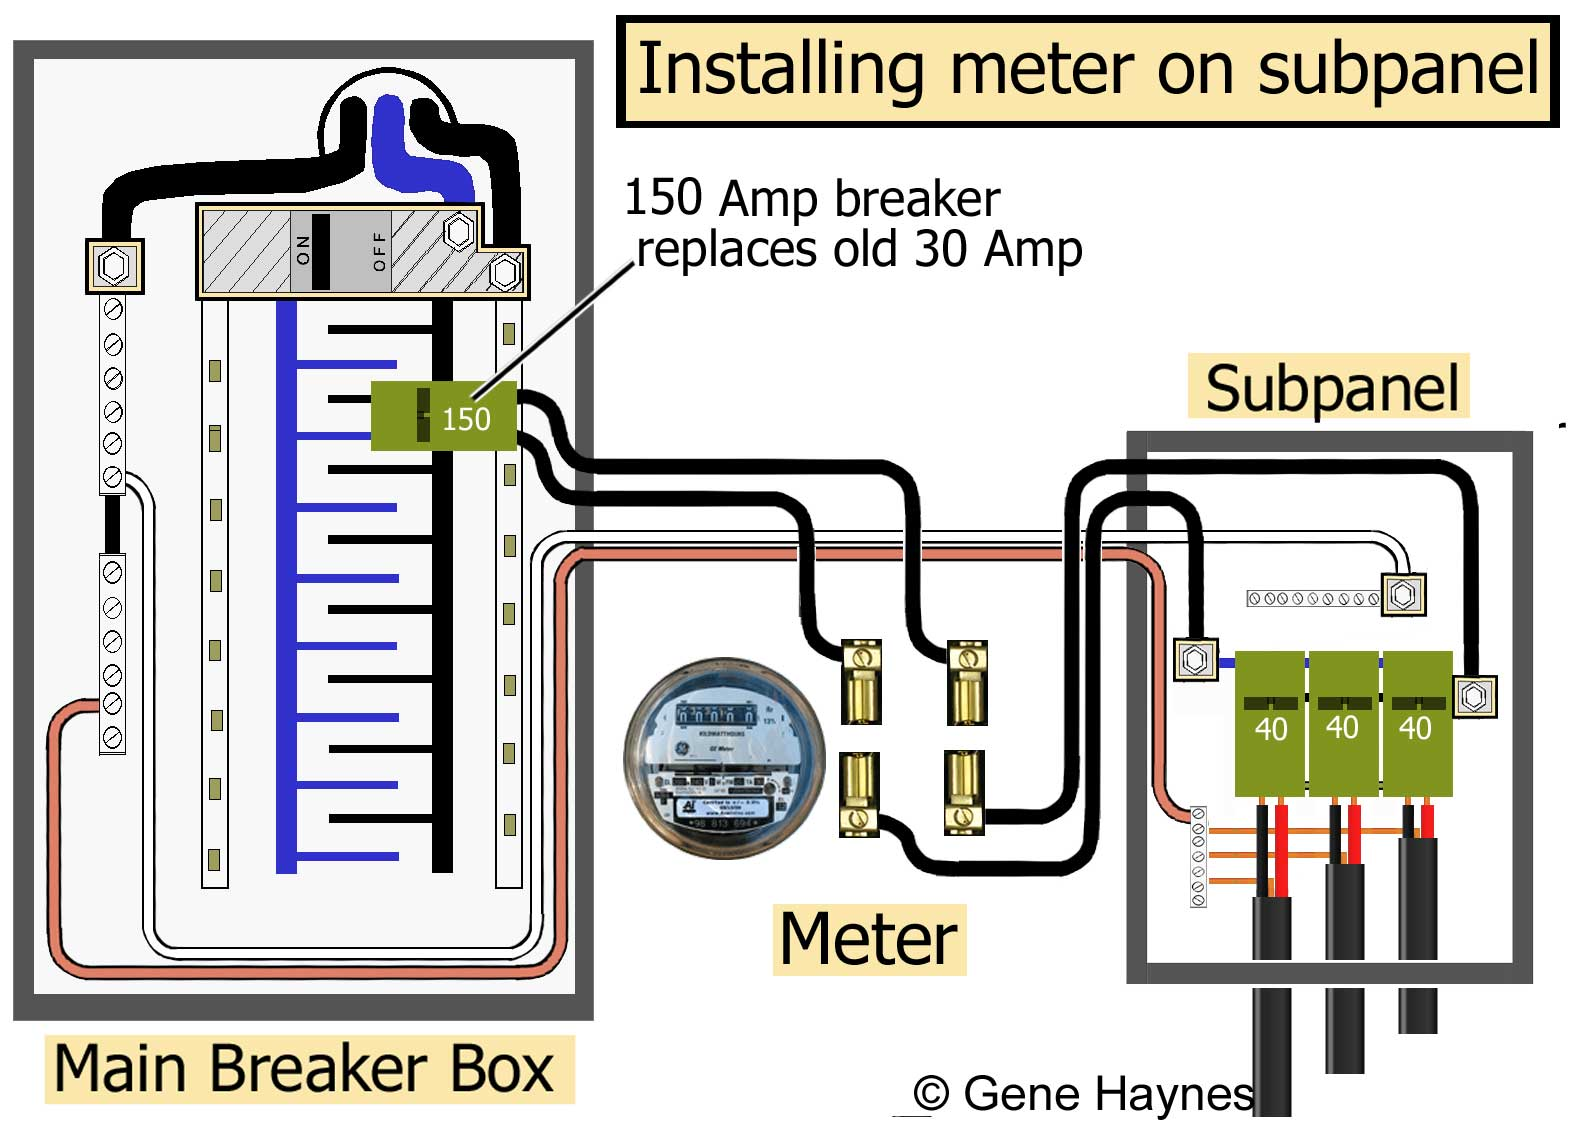 Main subpanel Tankless meter 600 how to wire tankless electric water heater 60 amp sub panel wiring diagram at creativeand.co